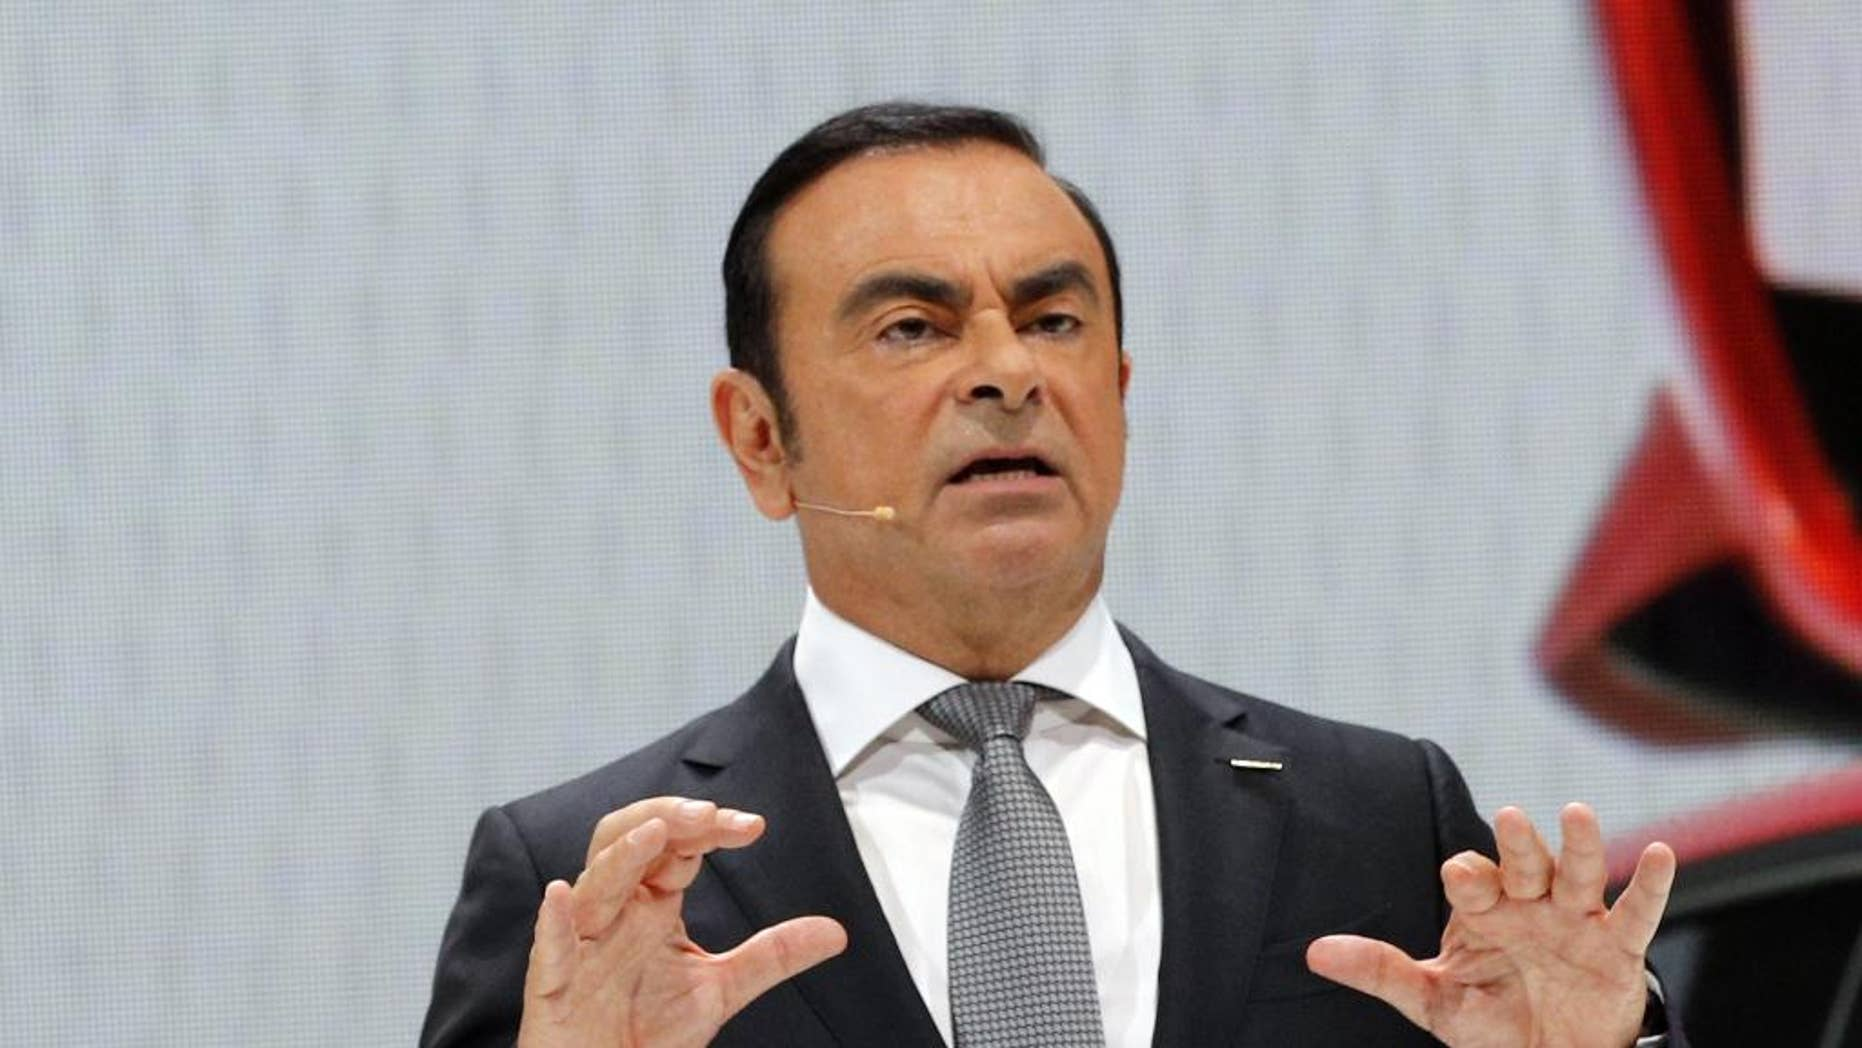 Nissan Motor Co. President and CEO Carlos Ghosn addresses the media during the presentation of the Nissan Micra as part of the first press day at the Paris Auto Show in Paris, France, Thursday, Sept. 29, 2016. The Paris Auto Show will open its gates to the public from Oct. 1st to 16th. (AP Photo/Christophe Ena)